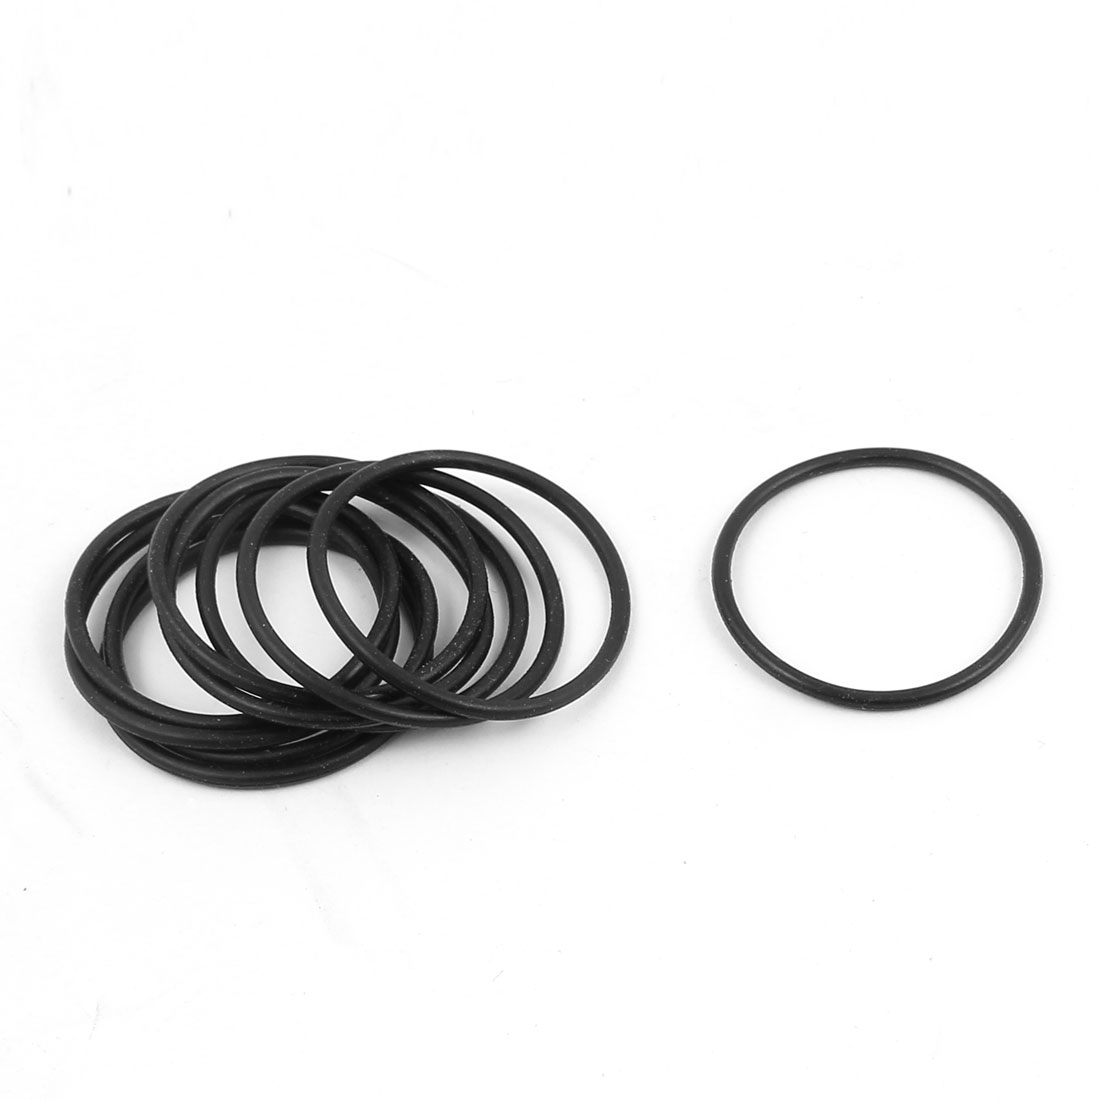 10 Pcs 26mm x 1.5mm Rubber O-rings NBR Heat Resistant Sealing Ring Grommets